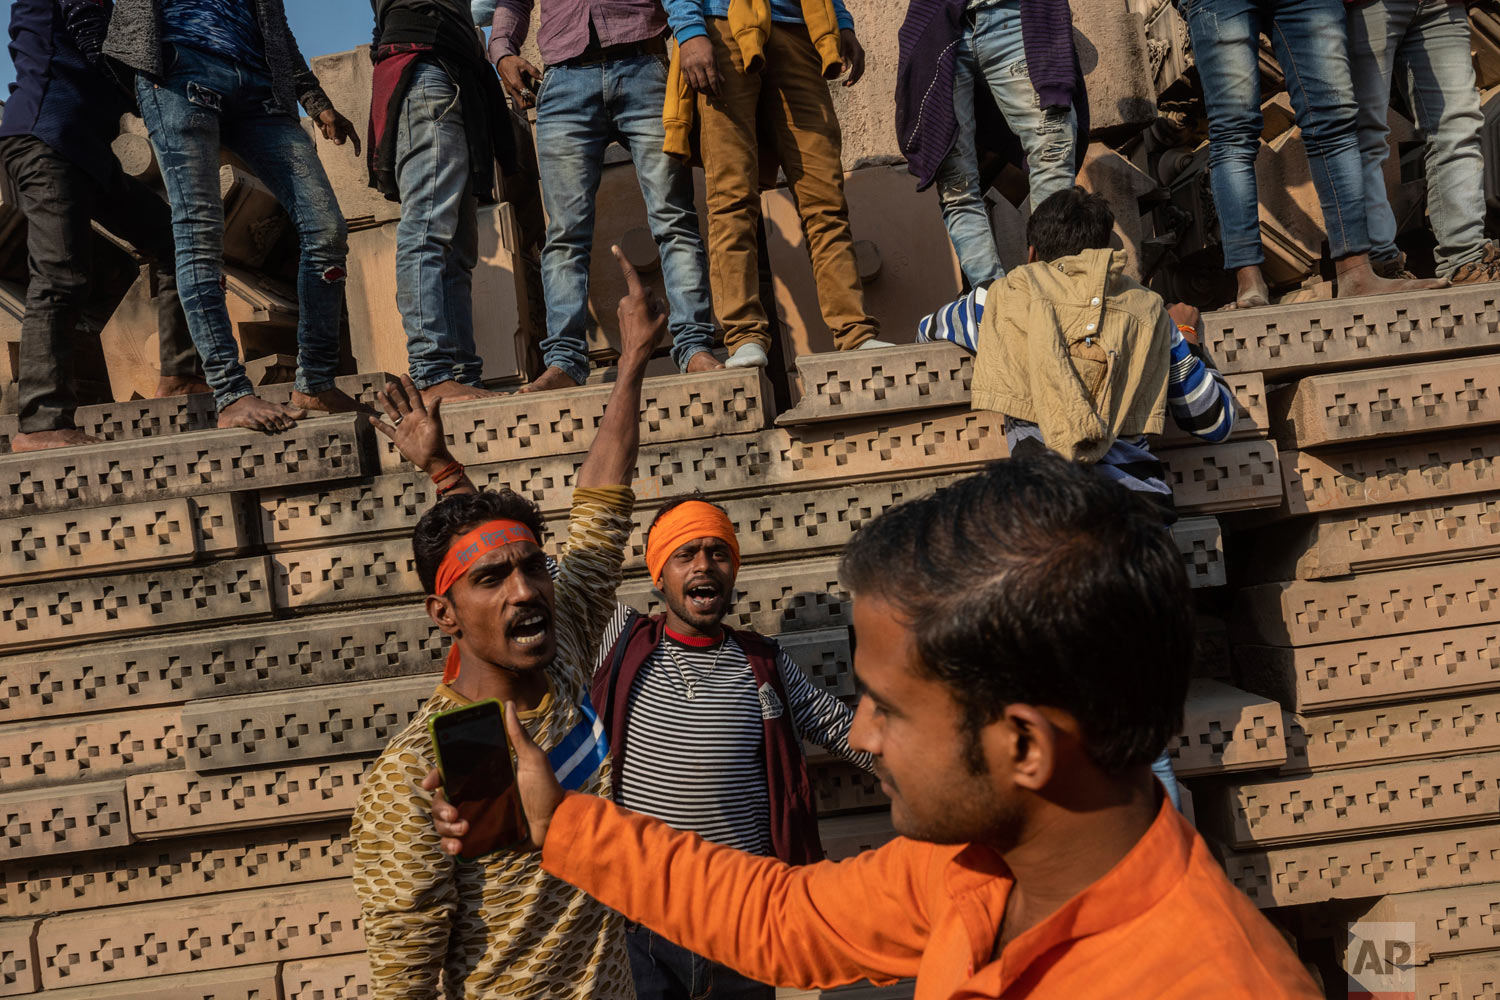 Hindu hardliners gather next to building materials to be assembled in a temple dedicated to Hindu god Ram in Ayodhya, Uttar Pradesh, India, Nov. 25, 2018. (AP Photo/Bernat Armangue)